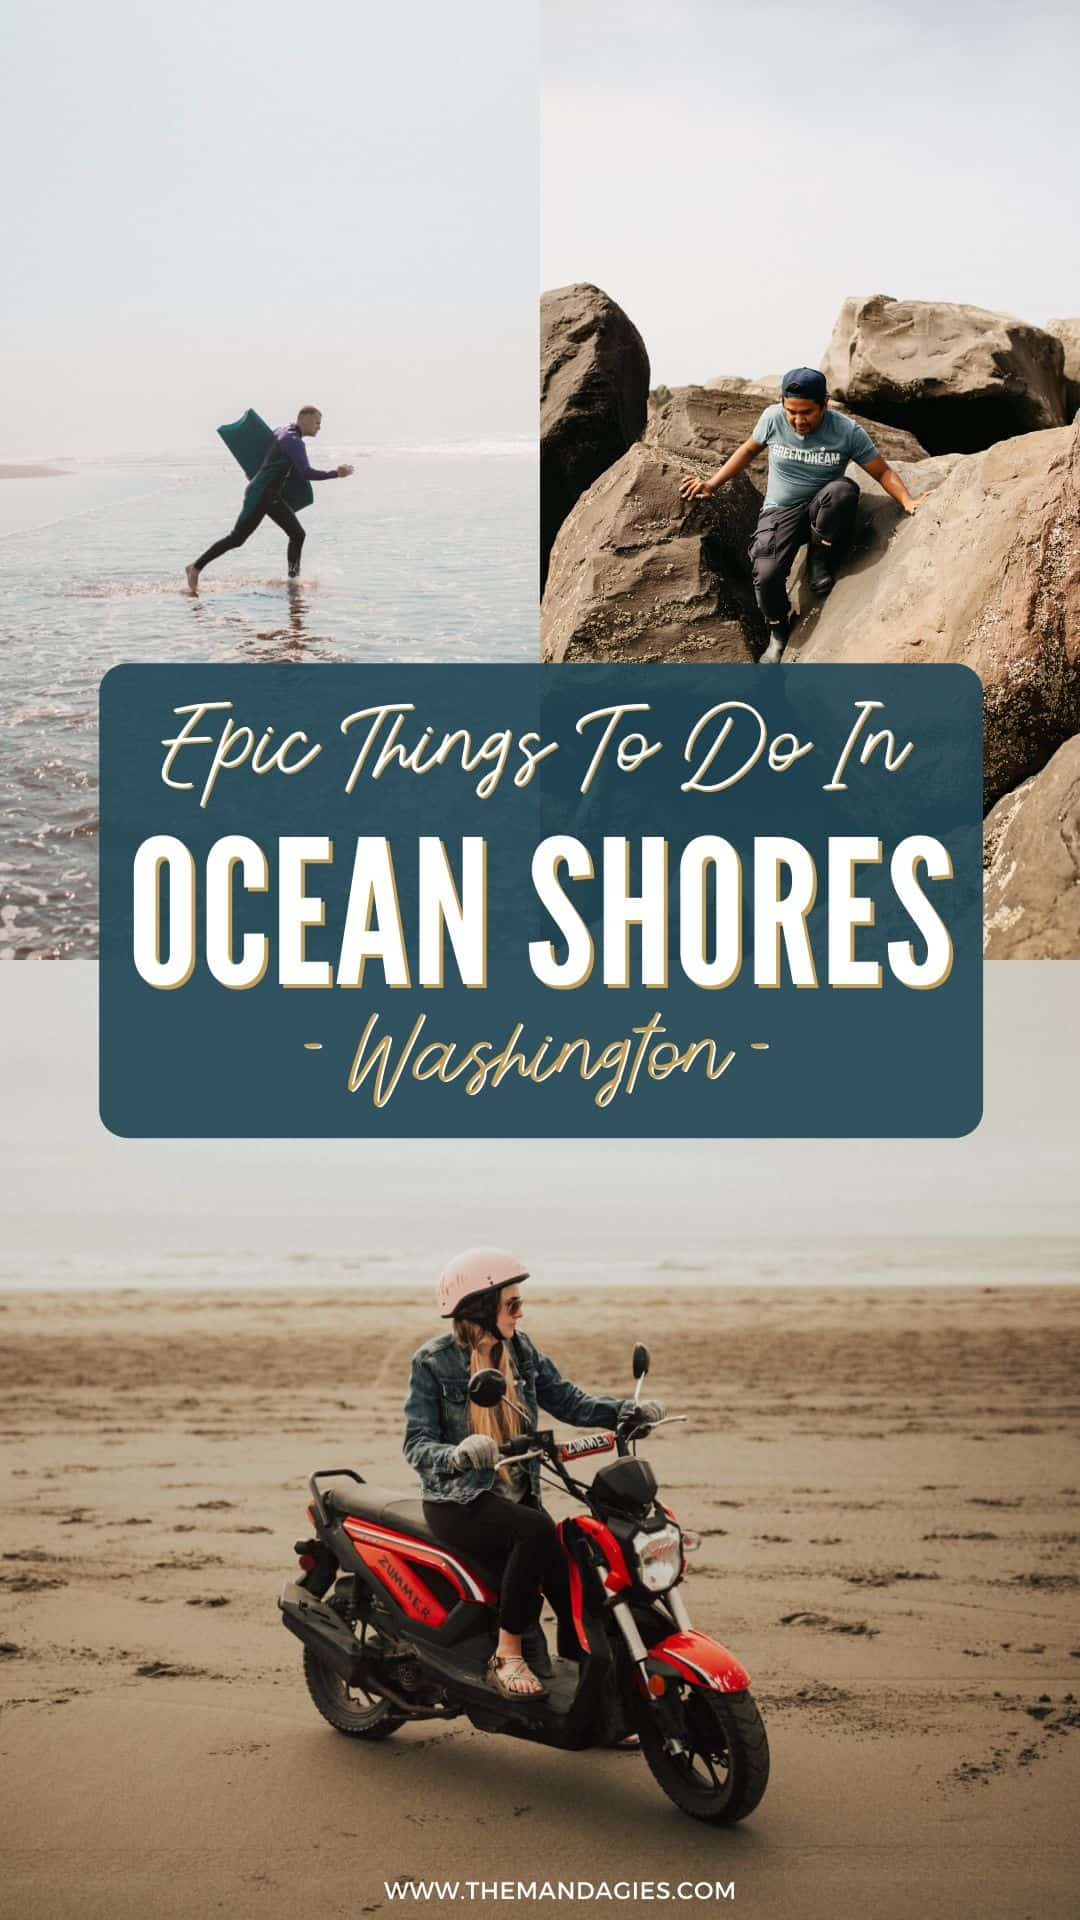 Ready for your next adventure on the Washington Coast? Look no further than Ocean Shores! This awesome town has the perfect combination of fun and relaxation. There are so many things to do in Ocean Shores that are perfect for the entire family! Save this post for your next trip to the Pacific Northwest! #washington #roadtrip #olympicpeninsula #PNW #PacificNorthwest #OceanShores #nature #photography #WashingtonCoast